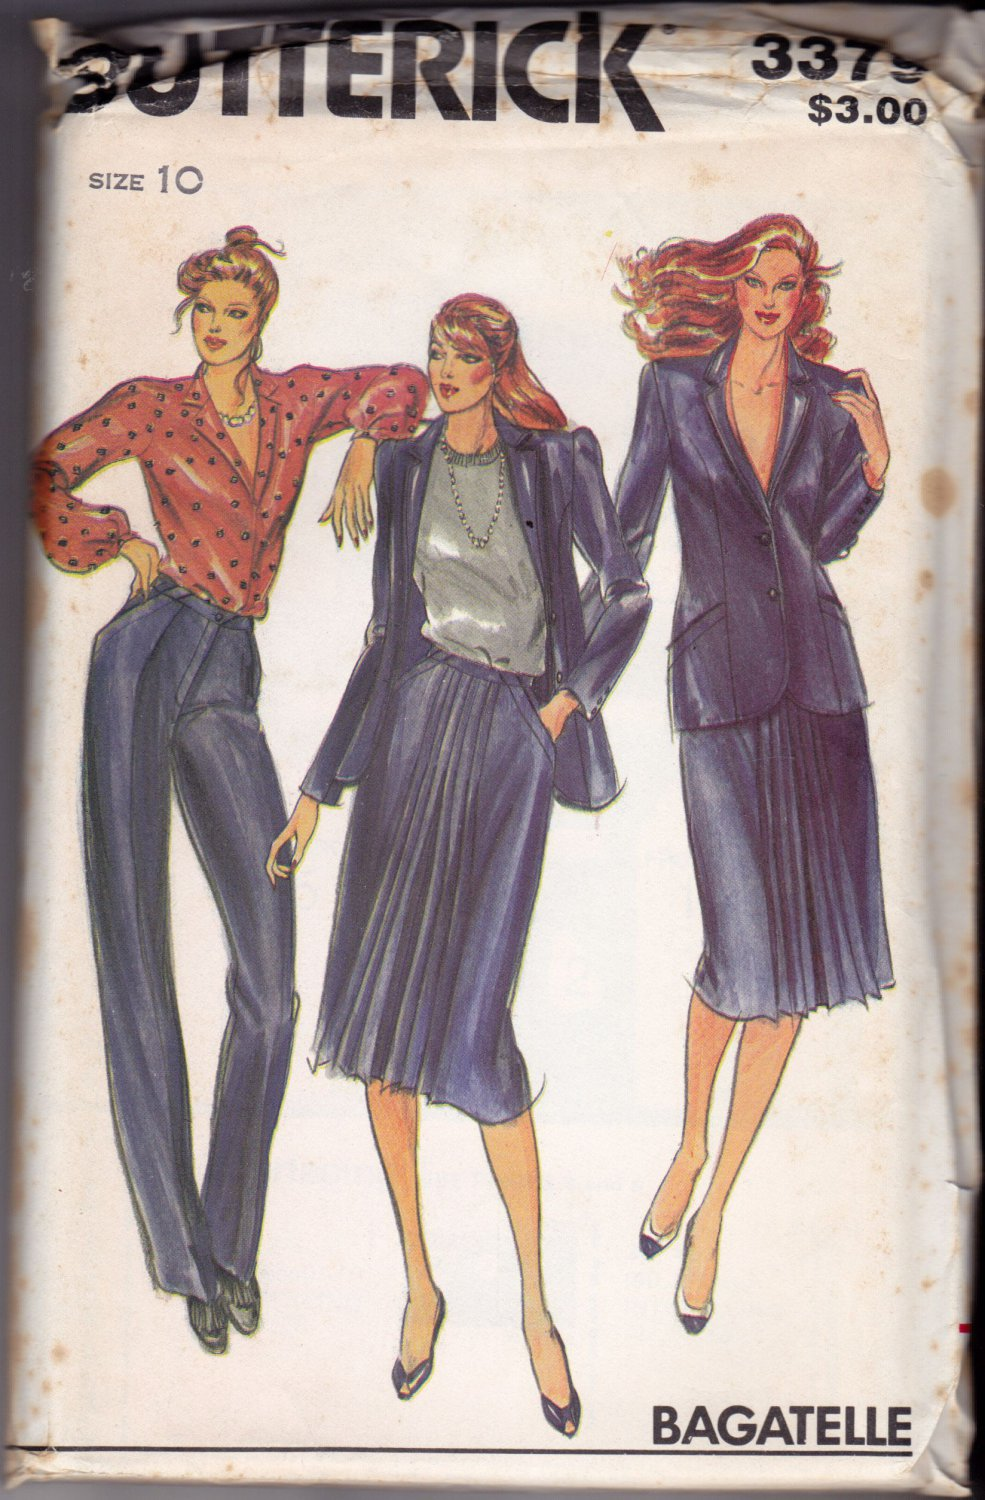 Butterick 3379 Pattern uncut 10 Lined Jacket Skirt Front Pleats Tapered Pants Bagatelle